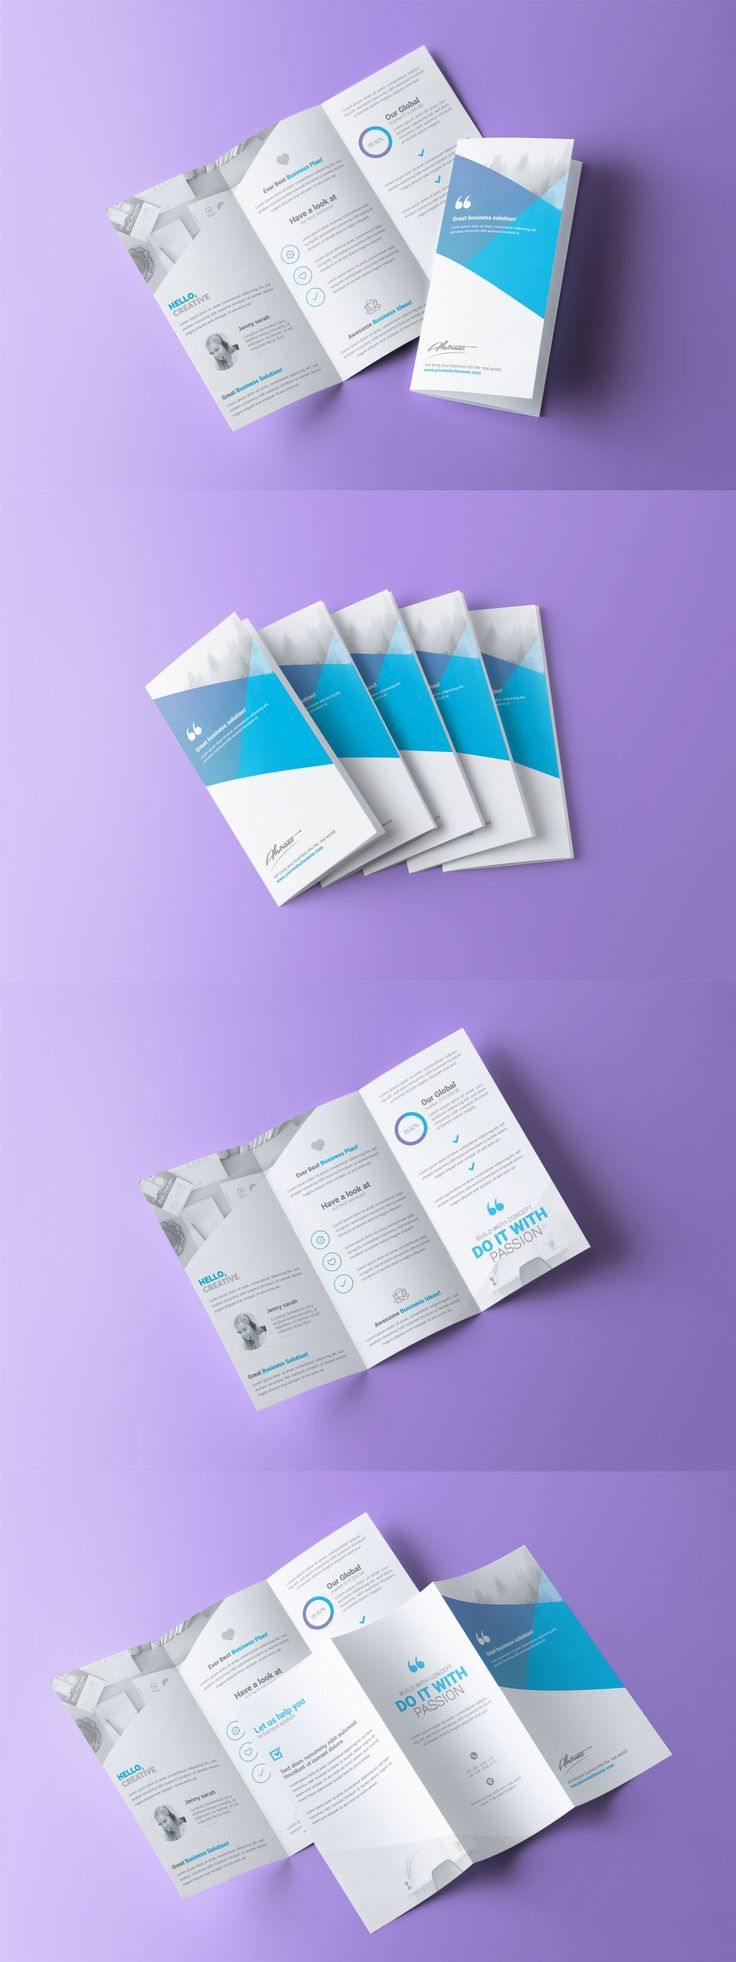 Multipurpose Tri-Fold Brochure Template PSD